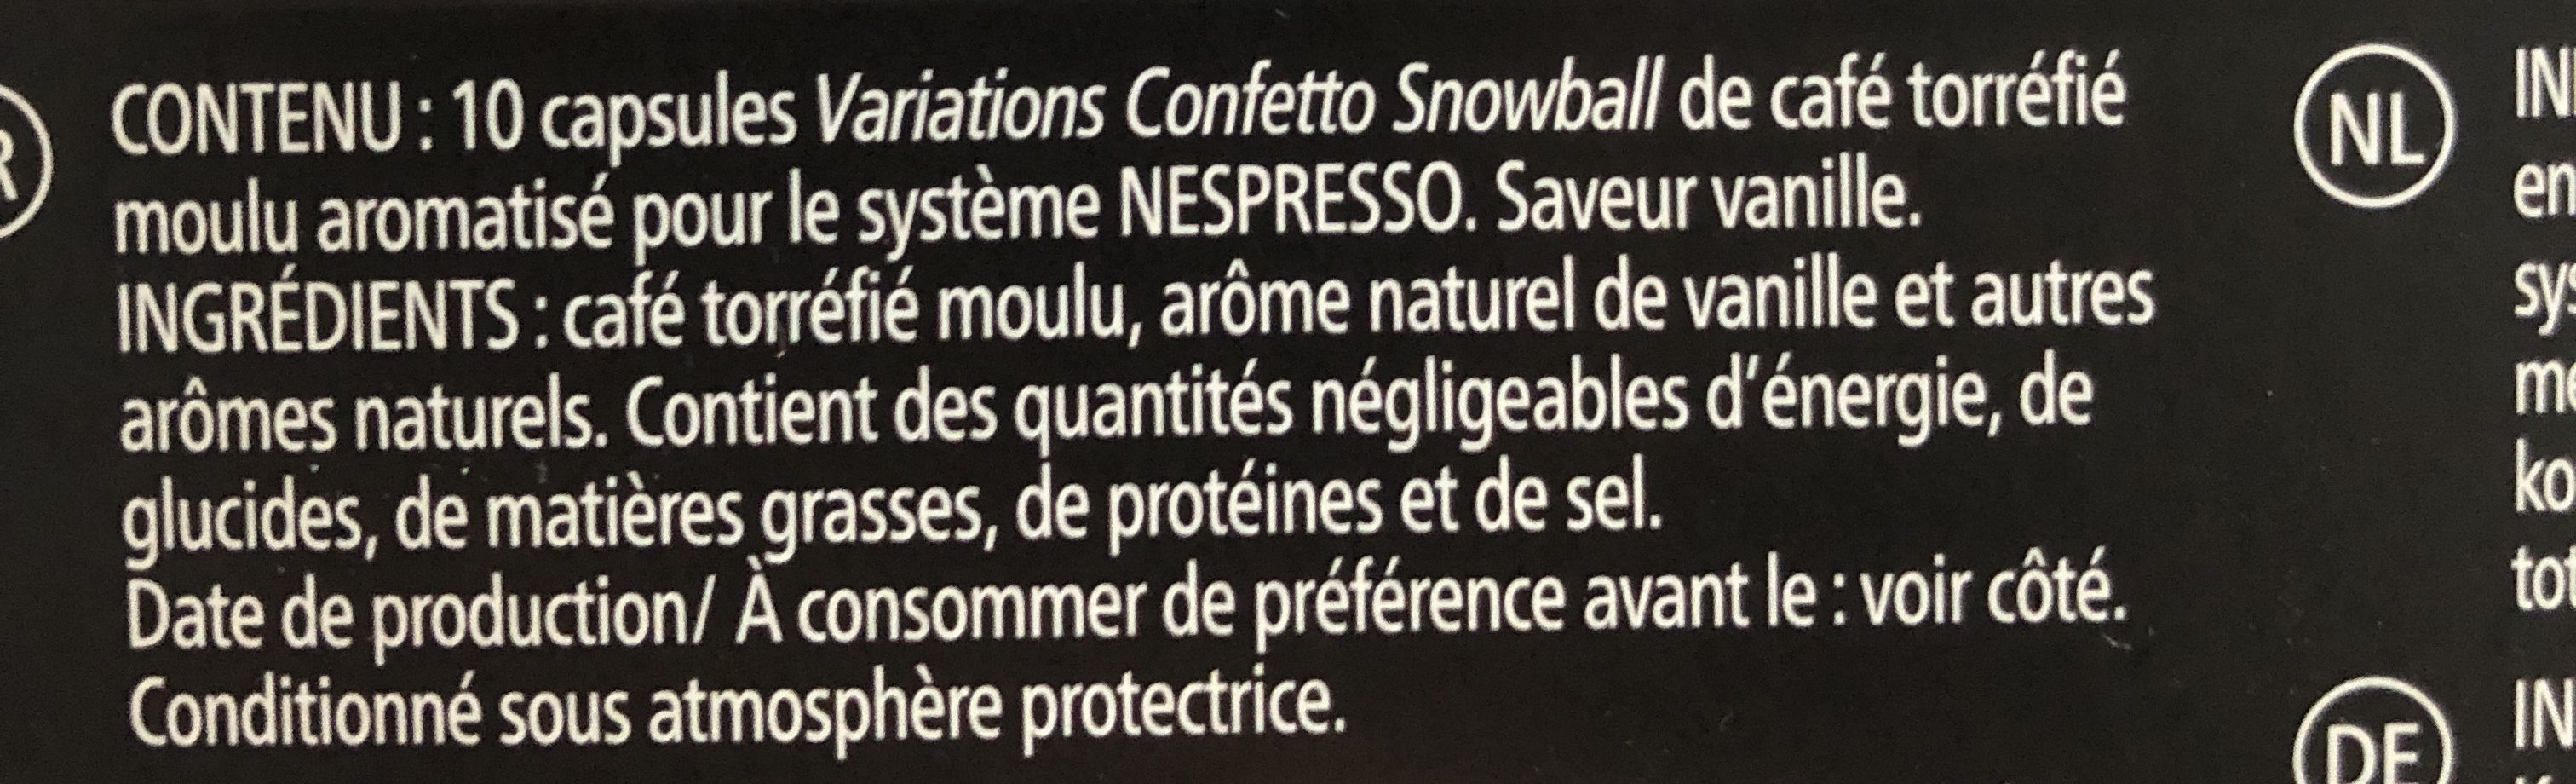 Variations Confetto Snowball - Limited Edition - Ingrédients